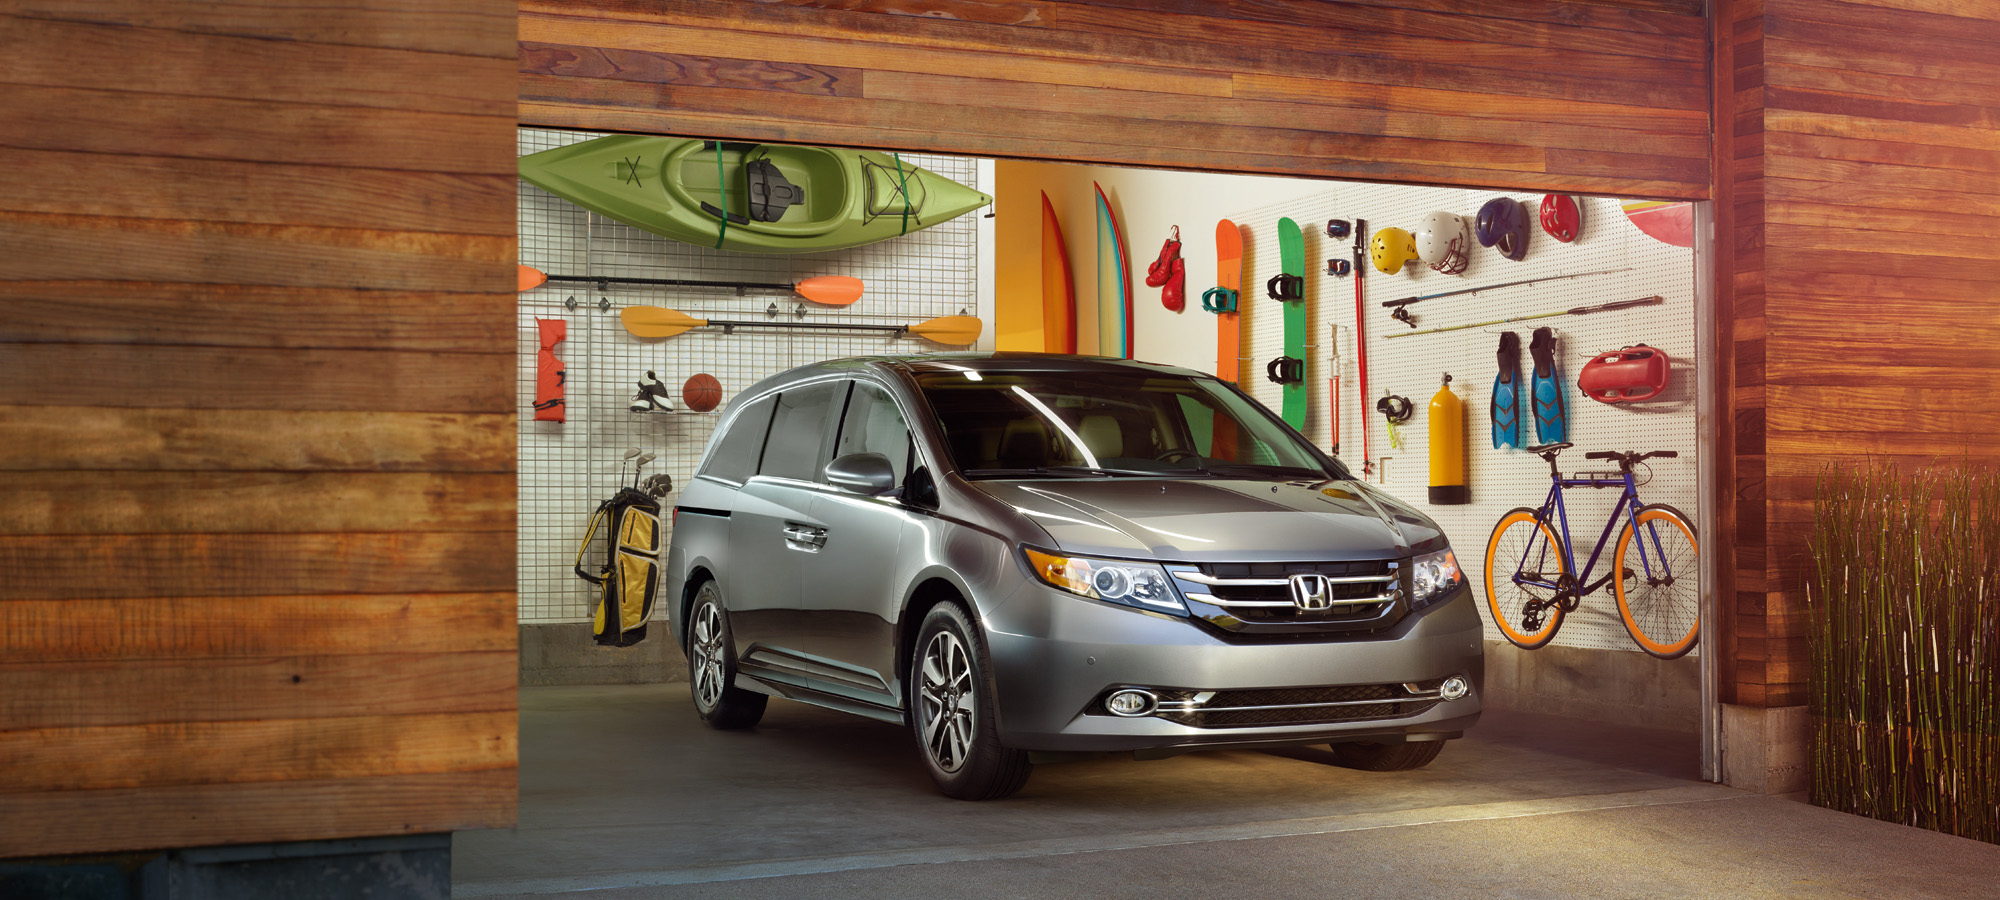 2016 Honda Odyssey For Sale in Glendale, WI